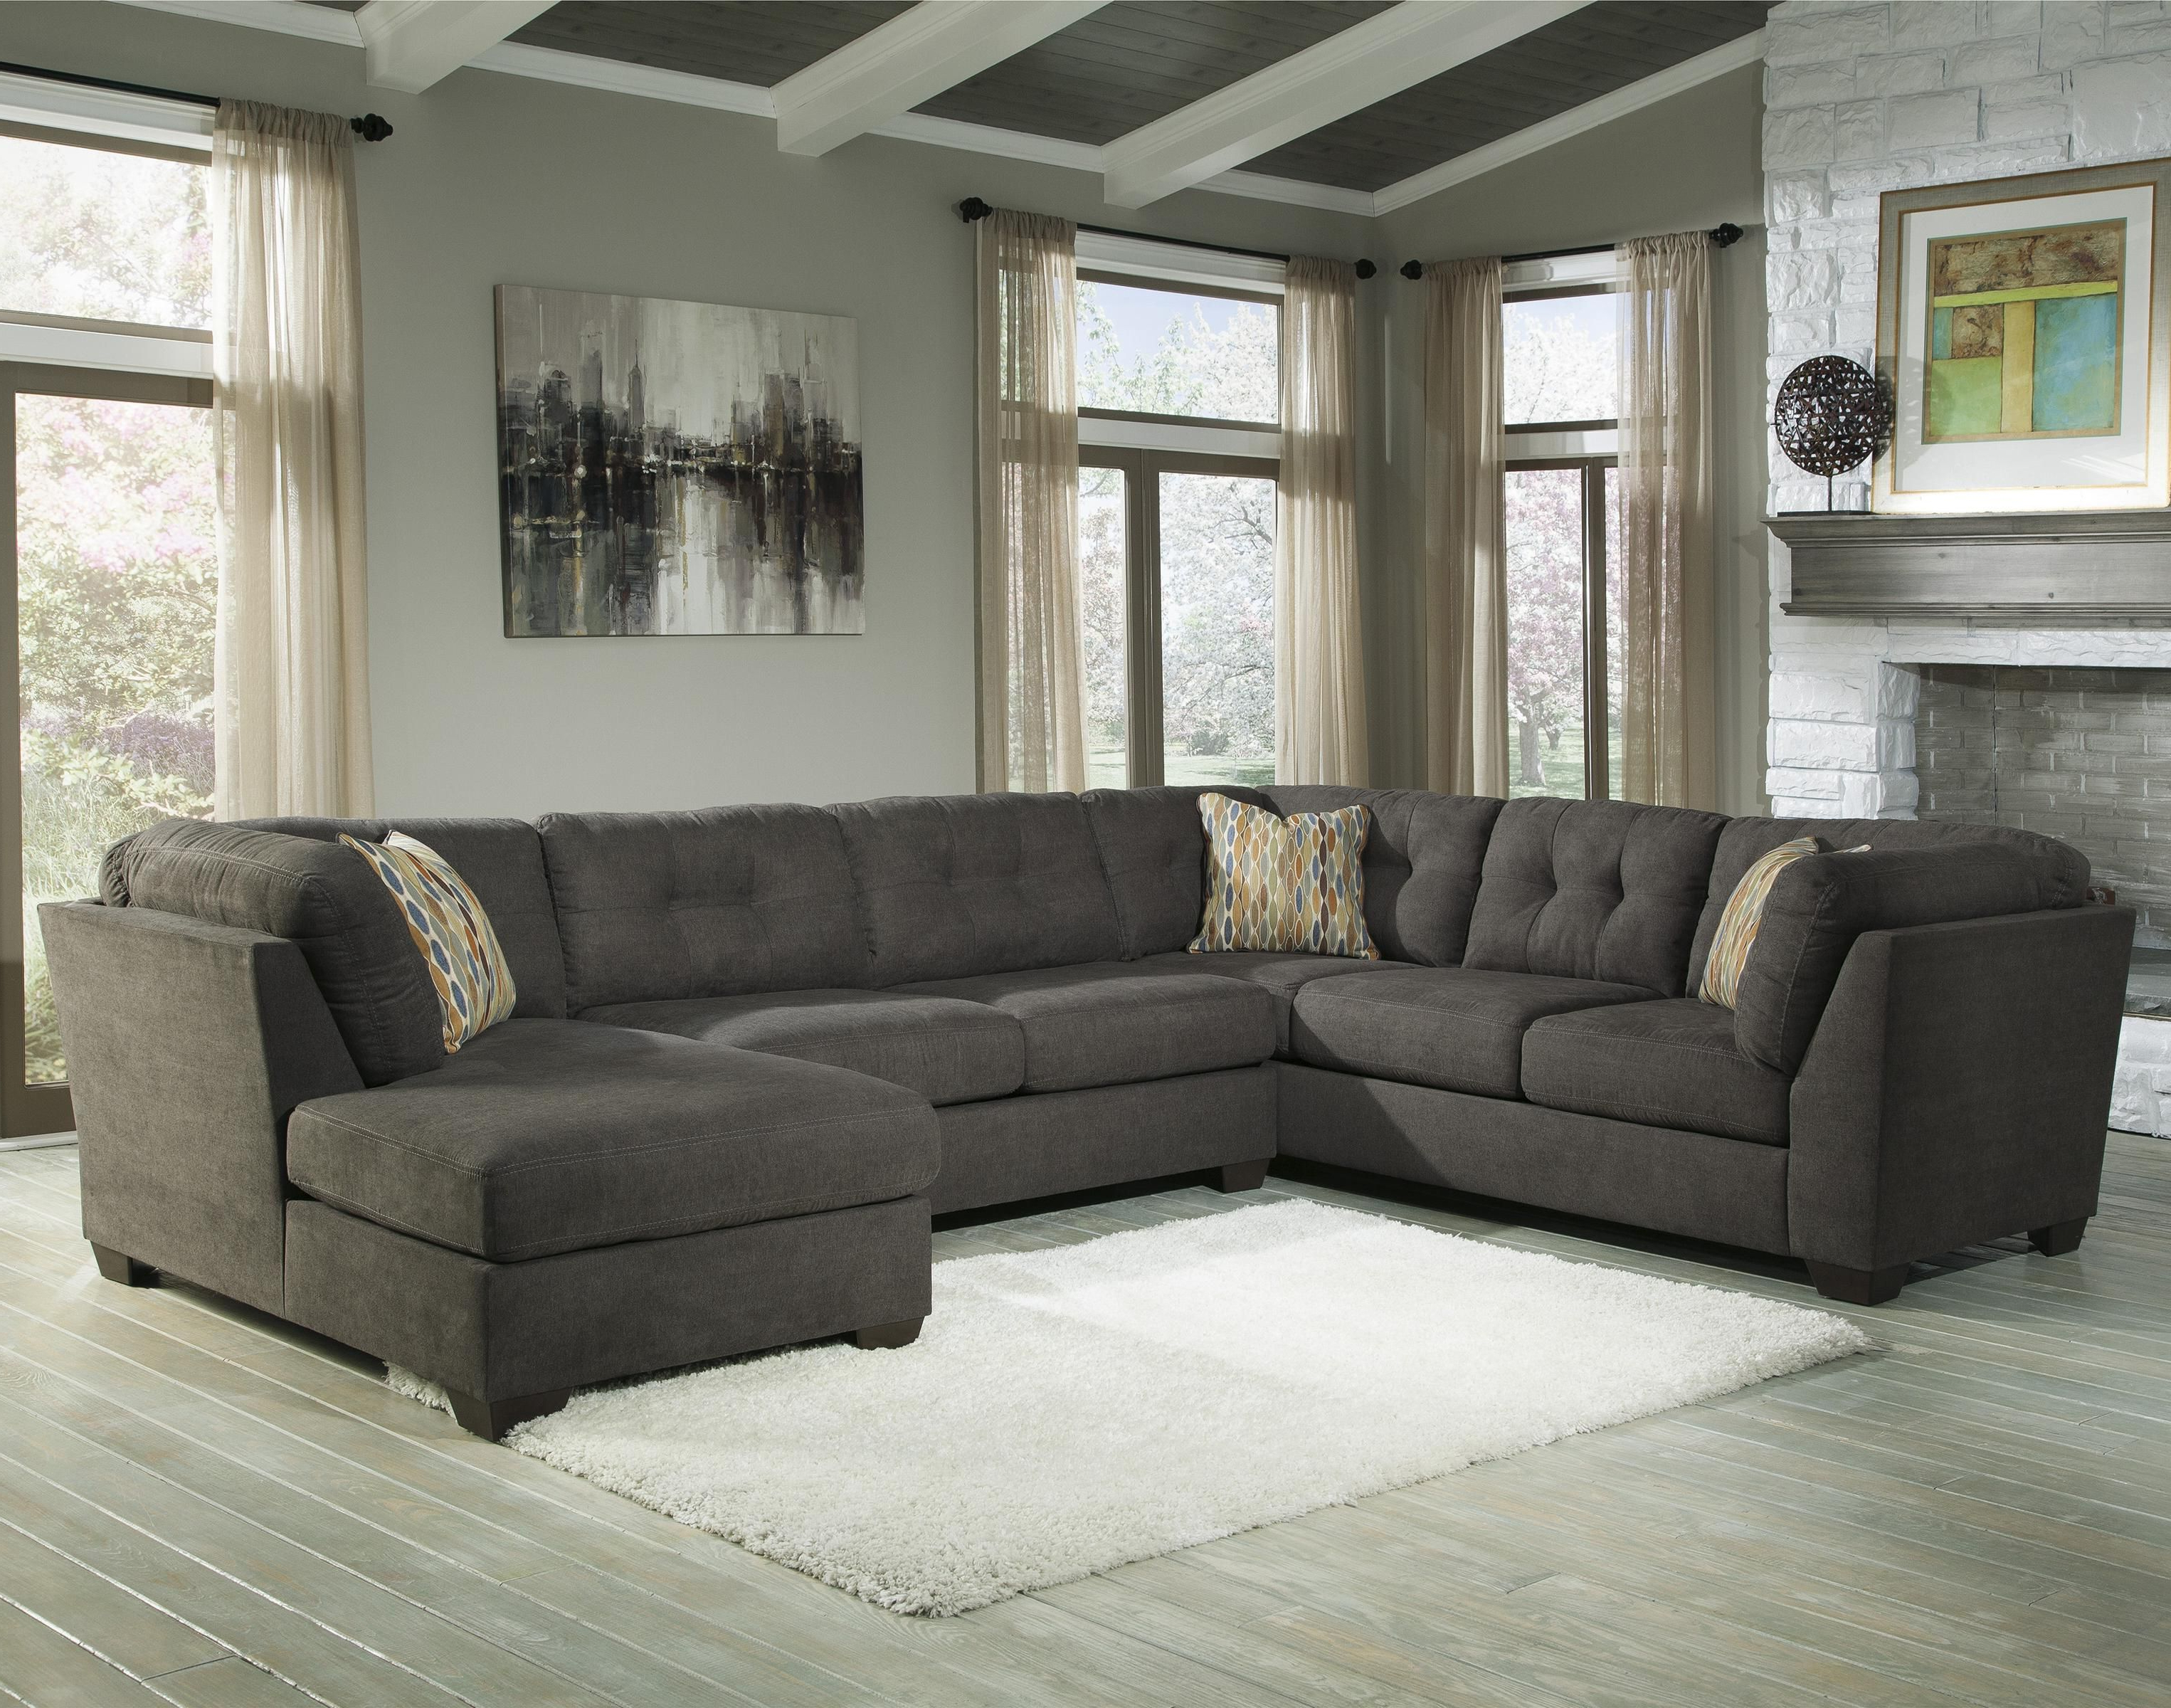 Lucy Dark Grey 2 Piece Sectionals With Raf Chaise Pertaining To Most Recent 3 Piece Sectional Sleeper Sofa Design Inspiration – Designing An (Gallery 19 of 20)